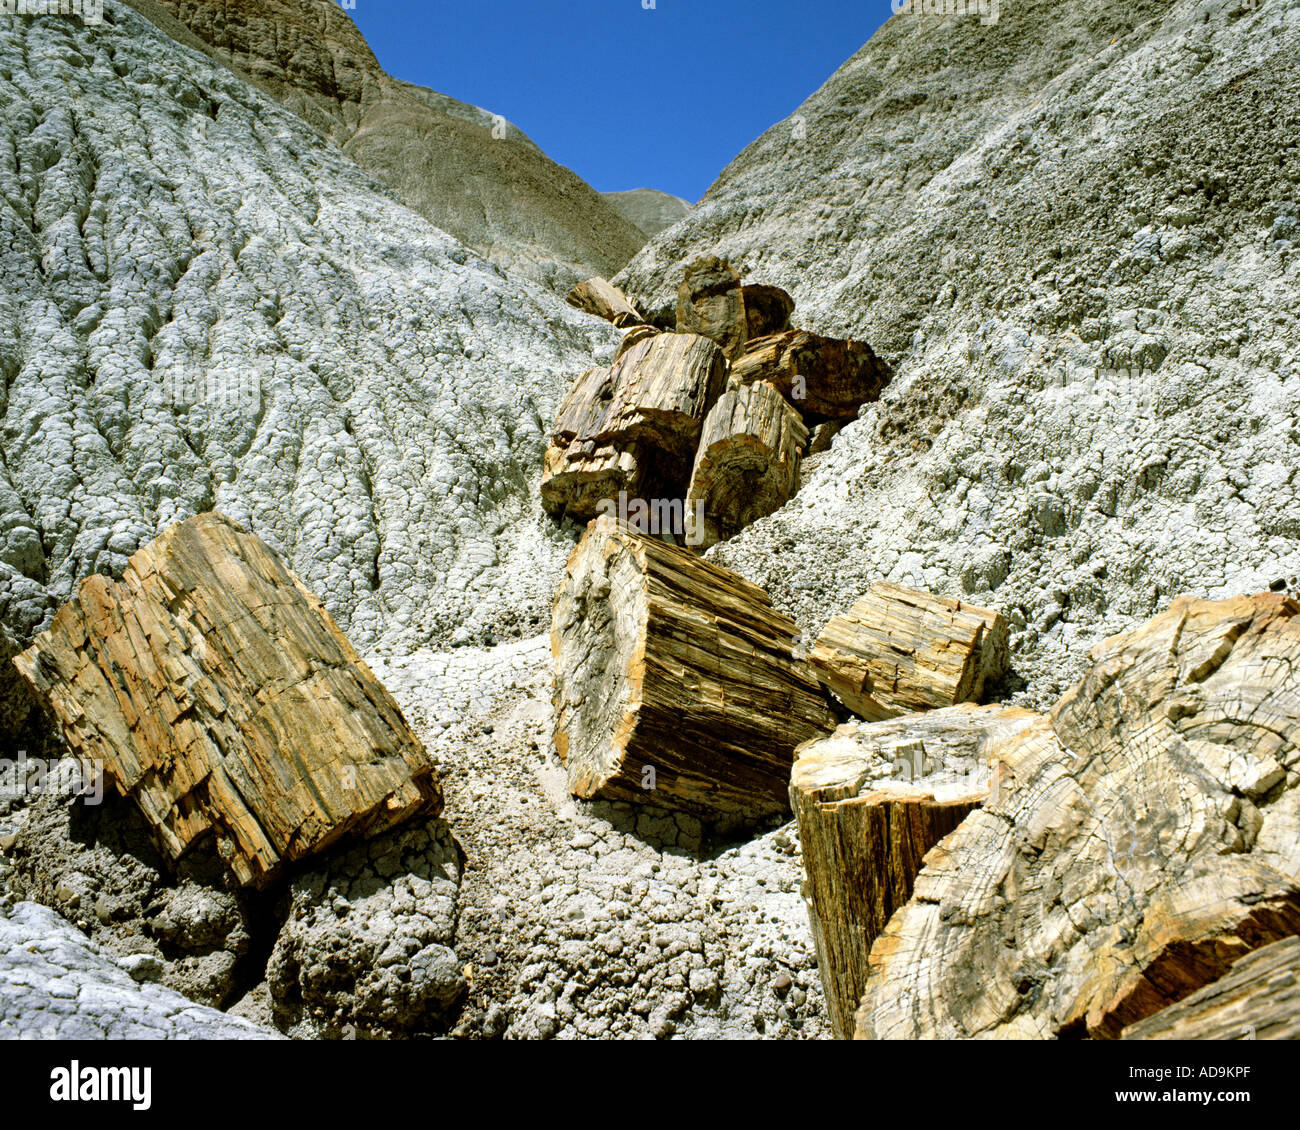 USA - ARIZONA: Petrified logs at Blue Mesa in Petrified Forest National Park - Stock Image